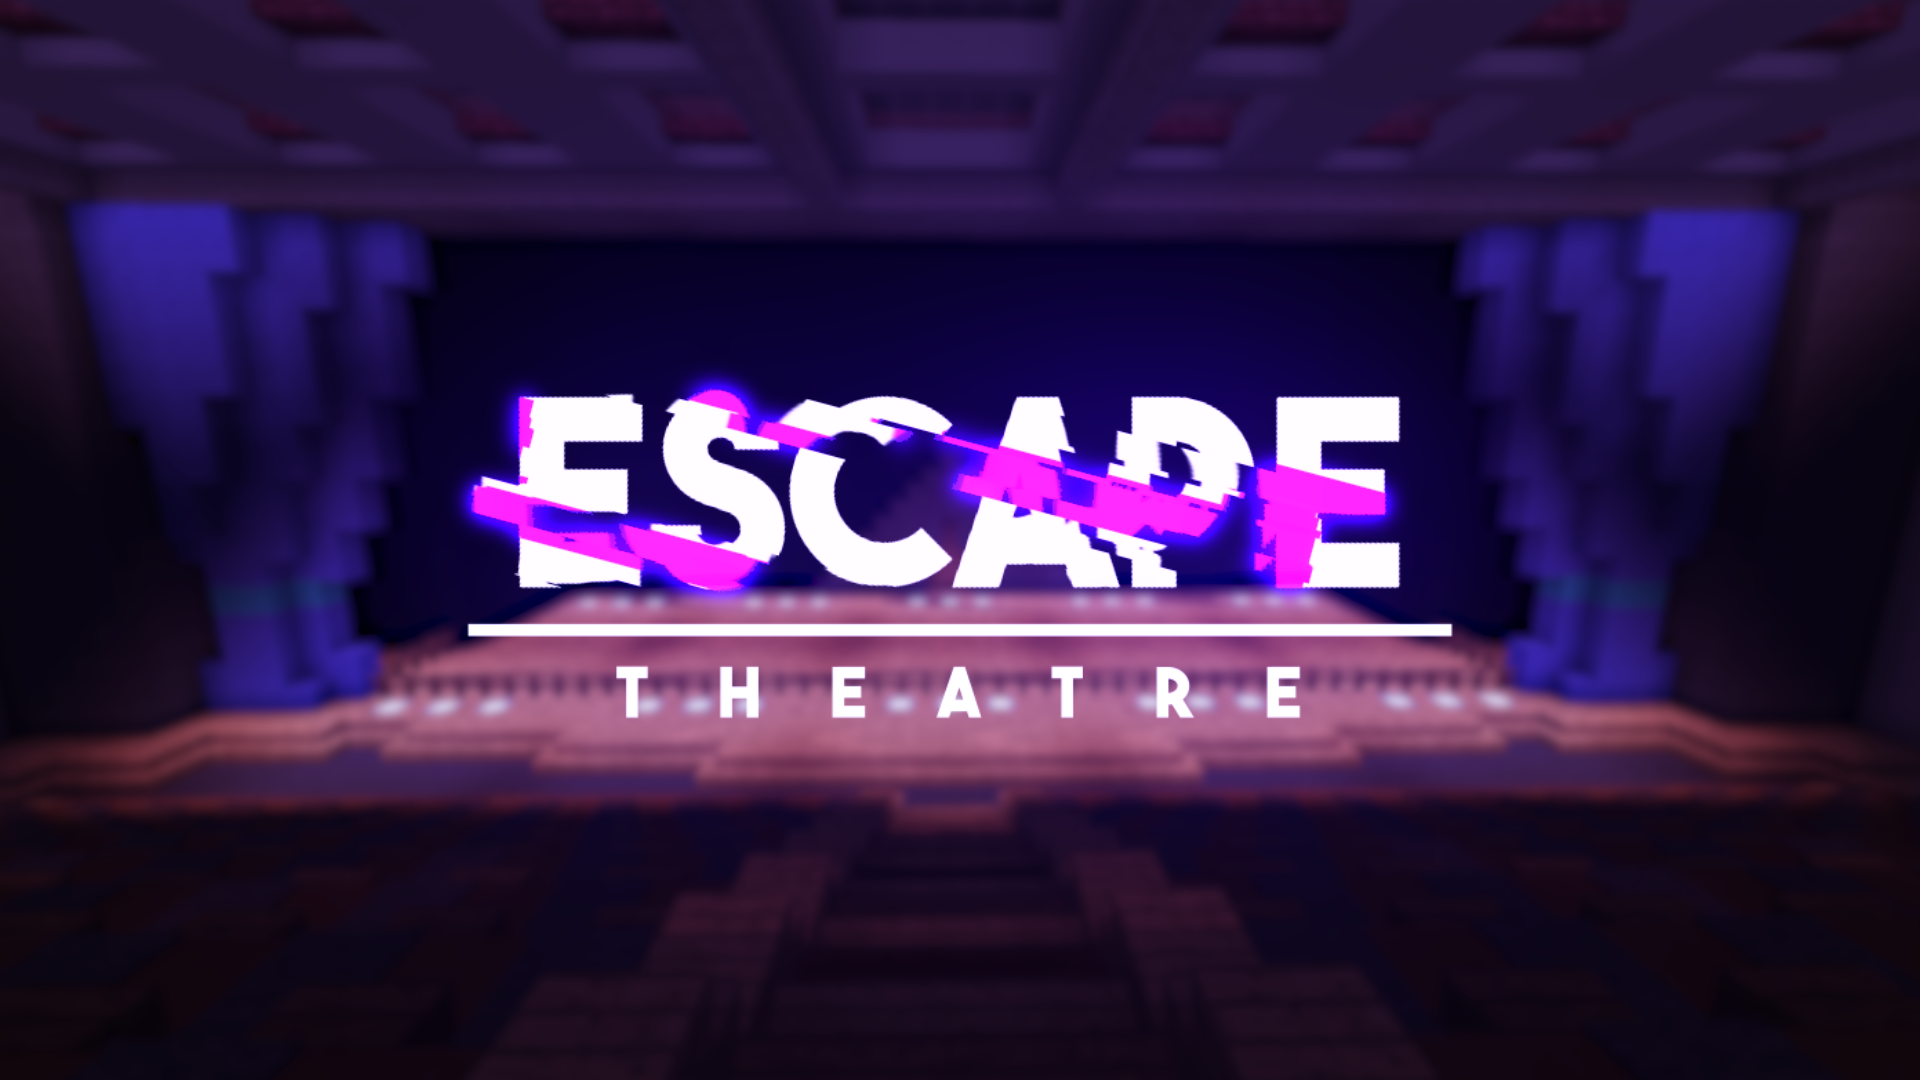 Escape: Theatre